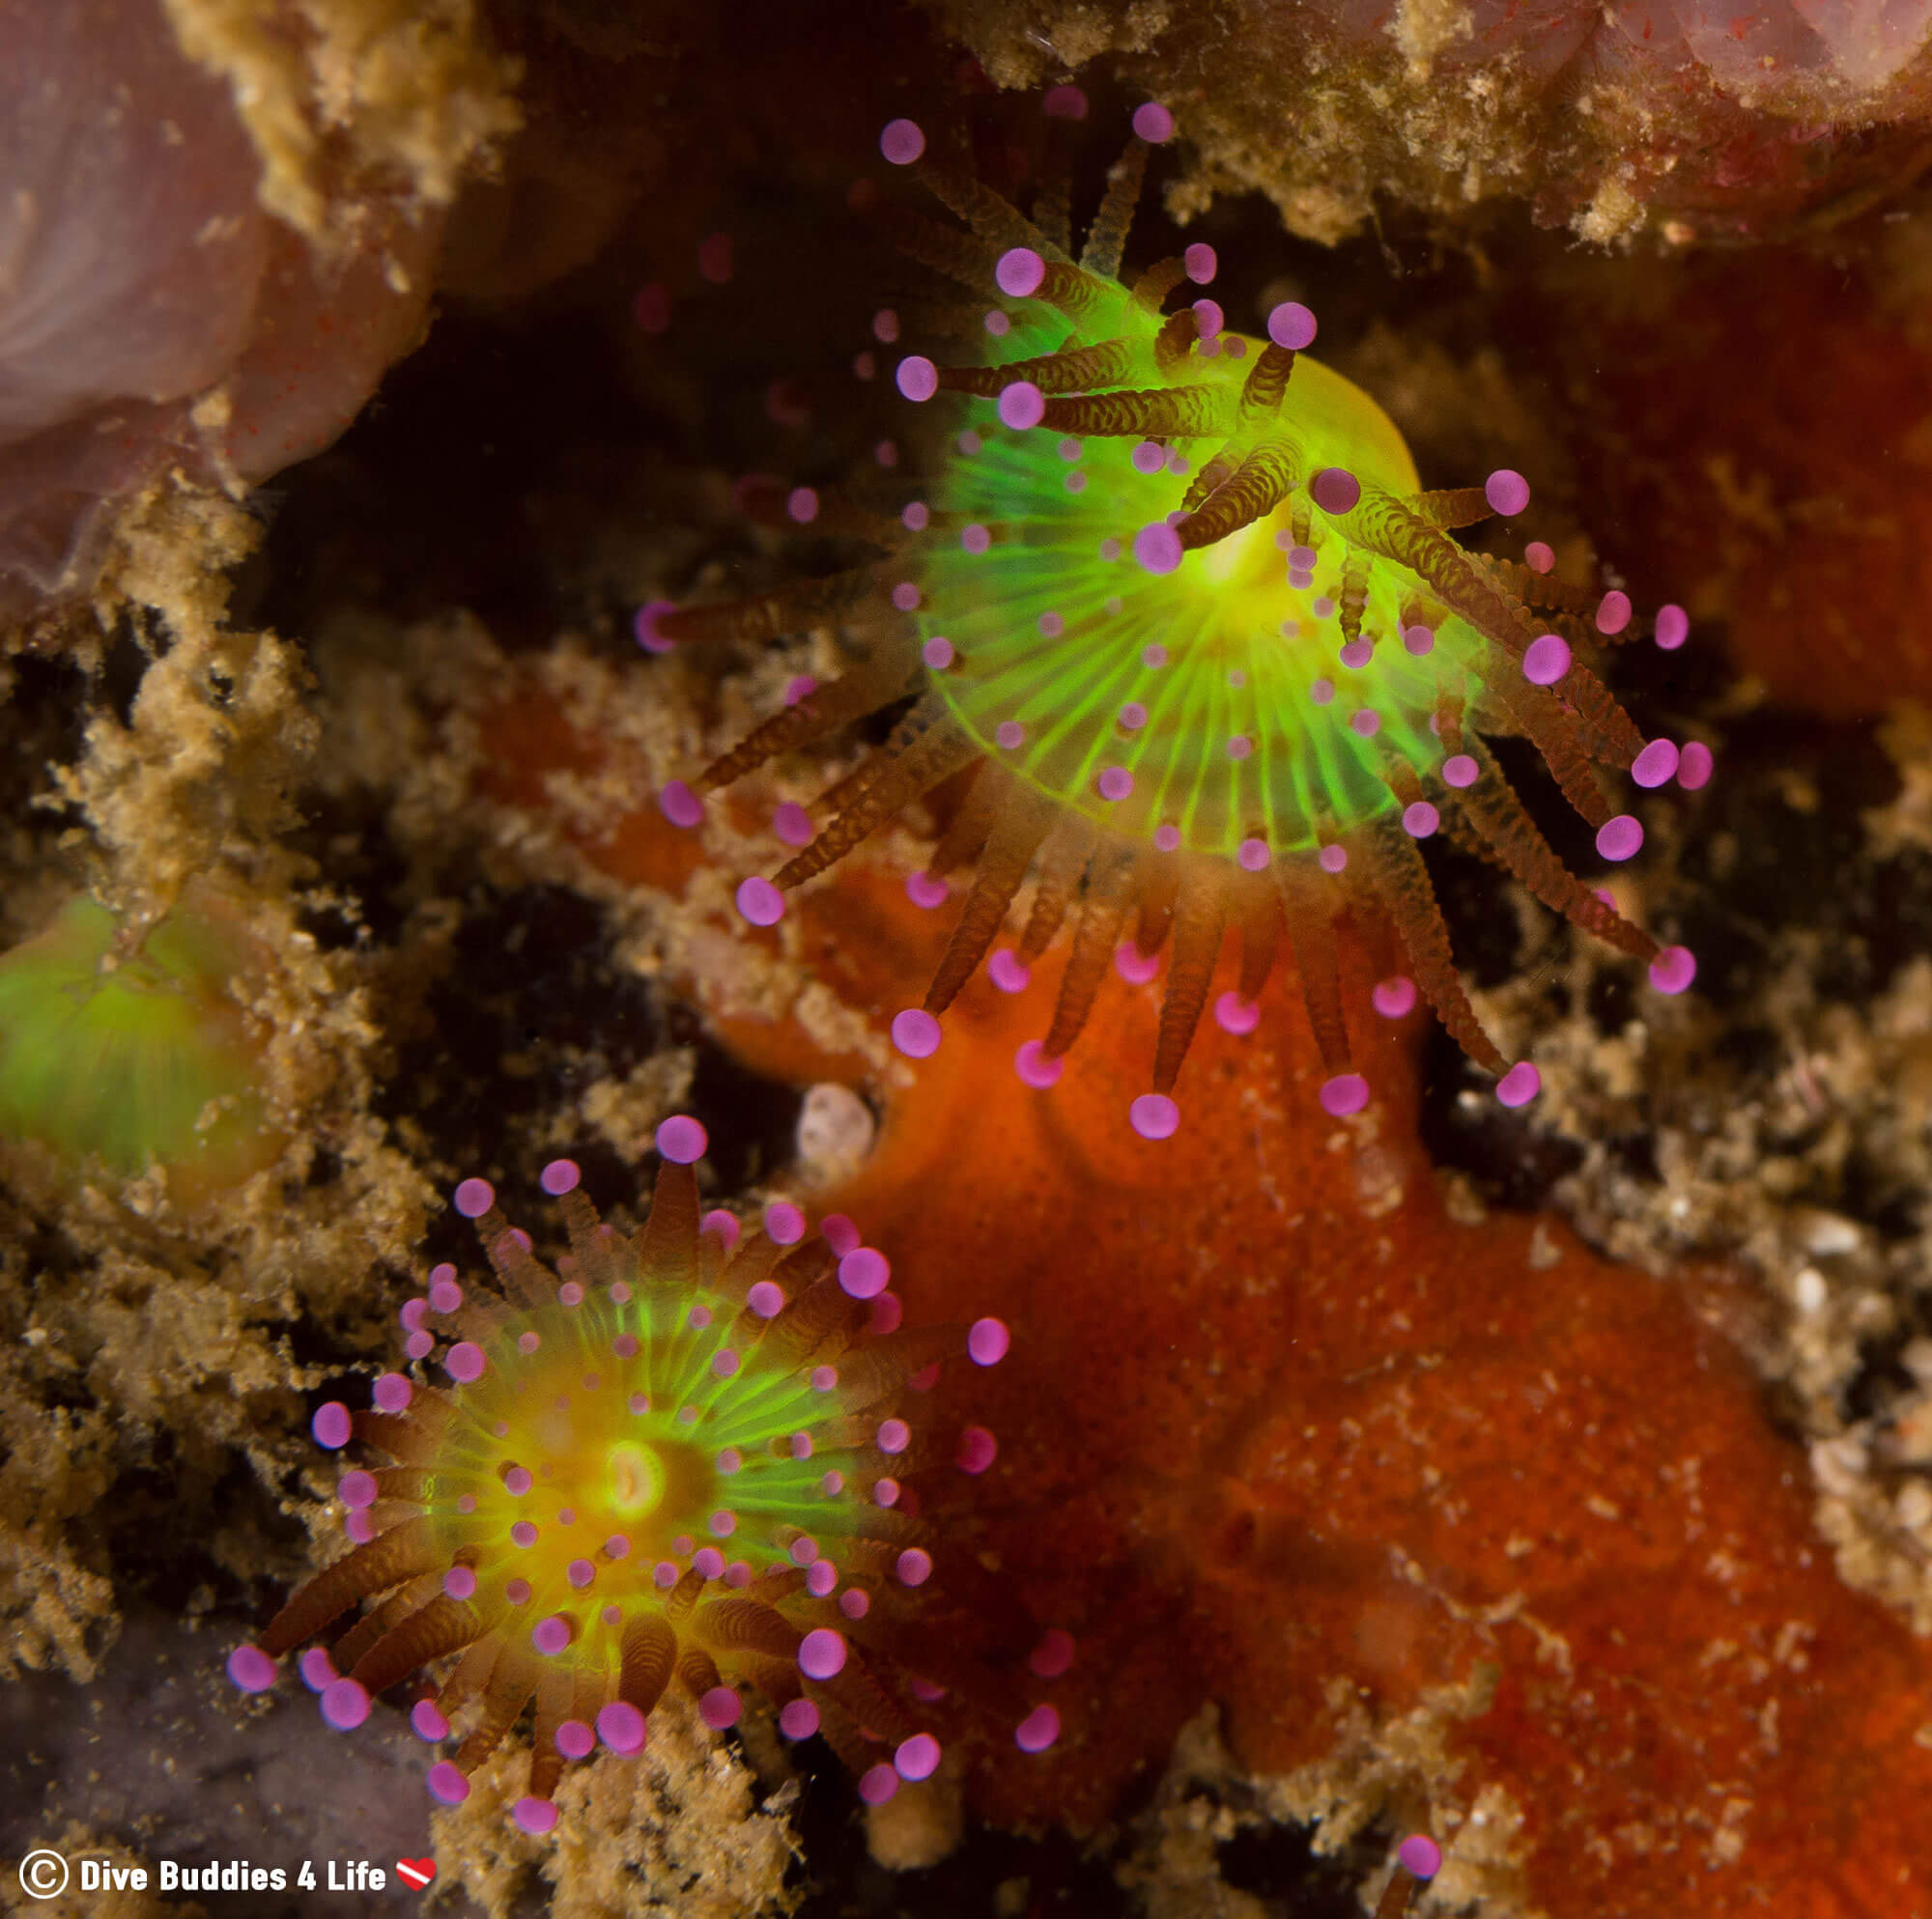 Macro Photograph of a Elegant Purple and Lime Green Jewelled Anemone from Underwater in Peniche, Portugal